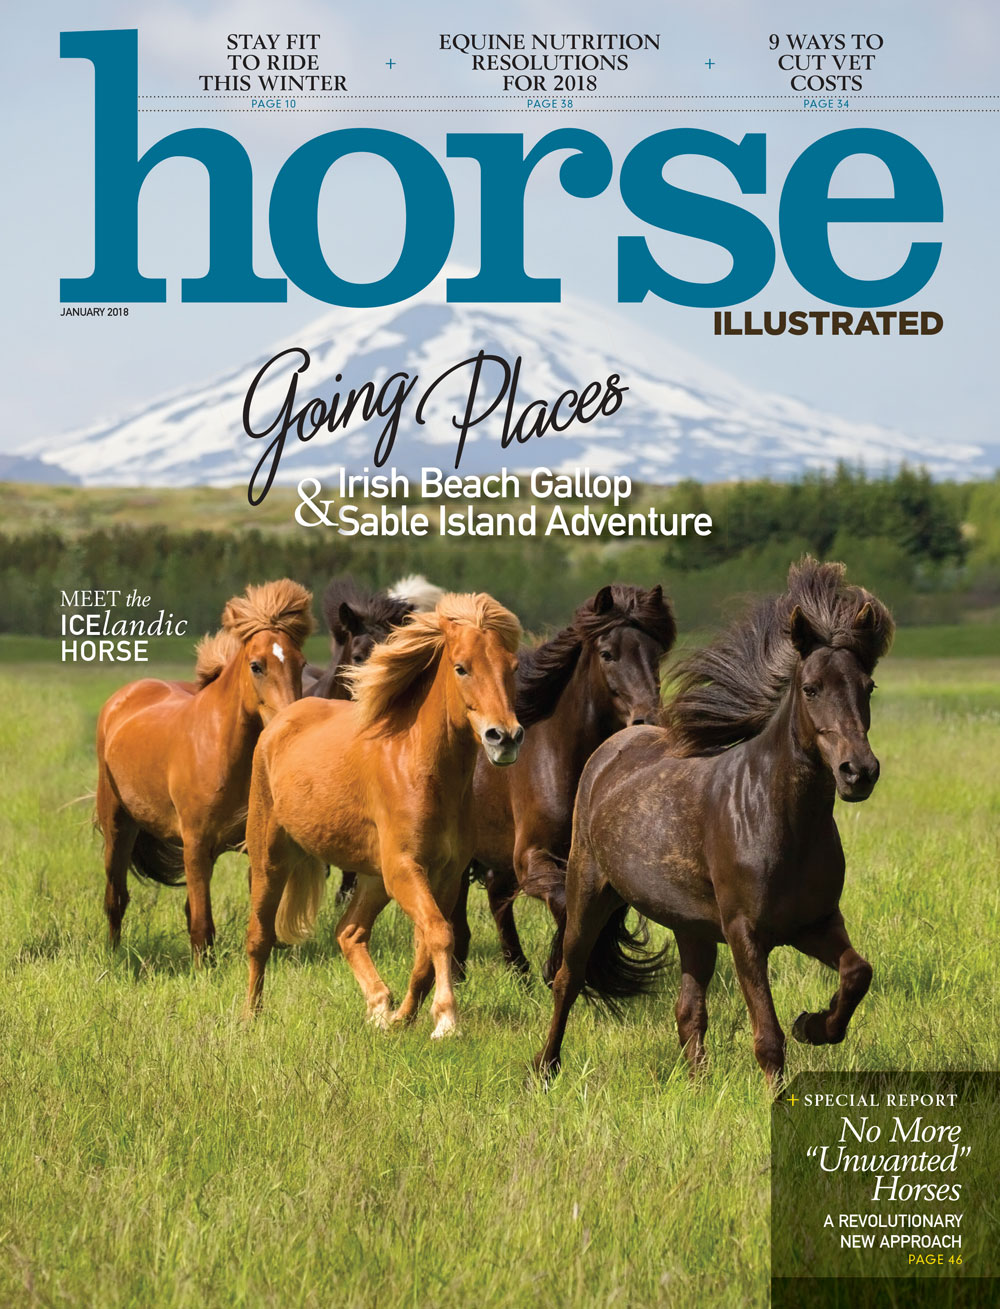 Horse Illustrated January 2018